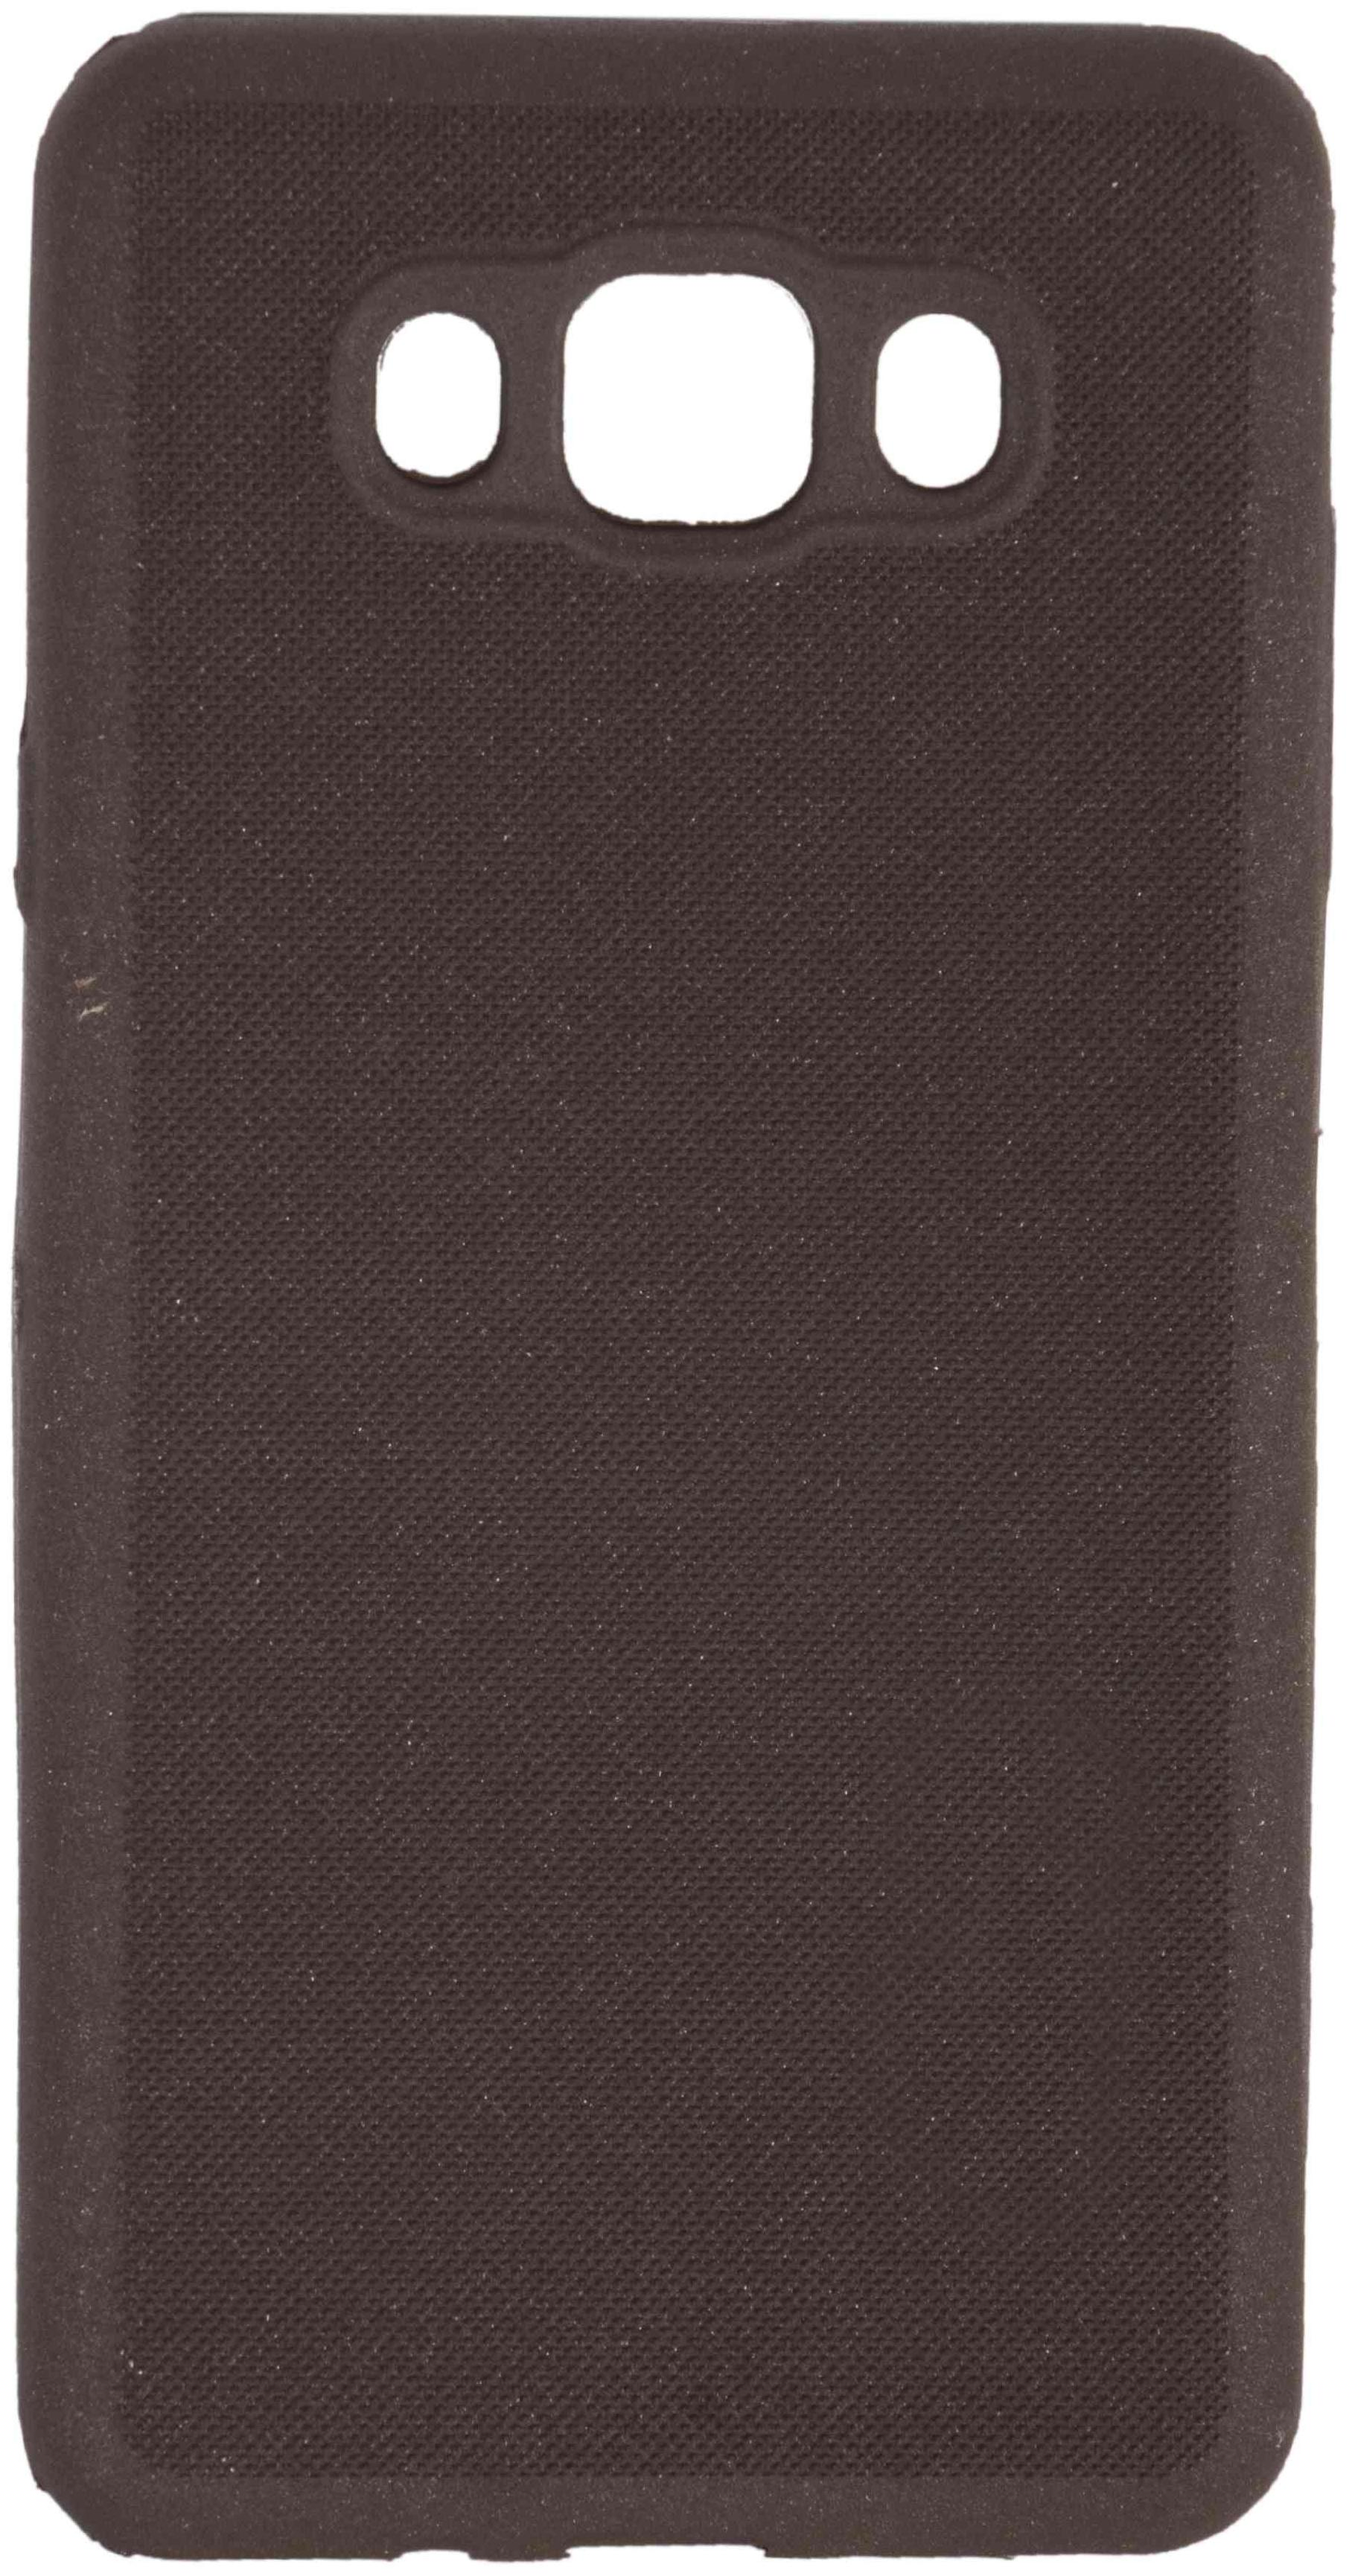 Samsung Galaxy J7   6  New 2016 Edition  TPU Back Cover By Iway   Brown   by I Way